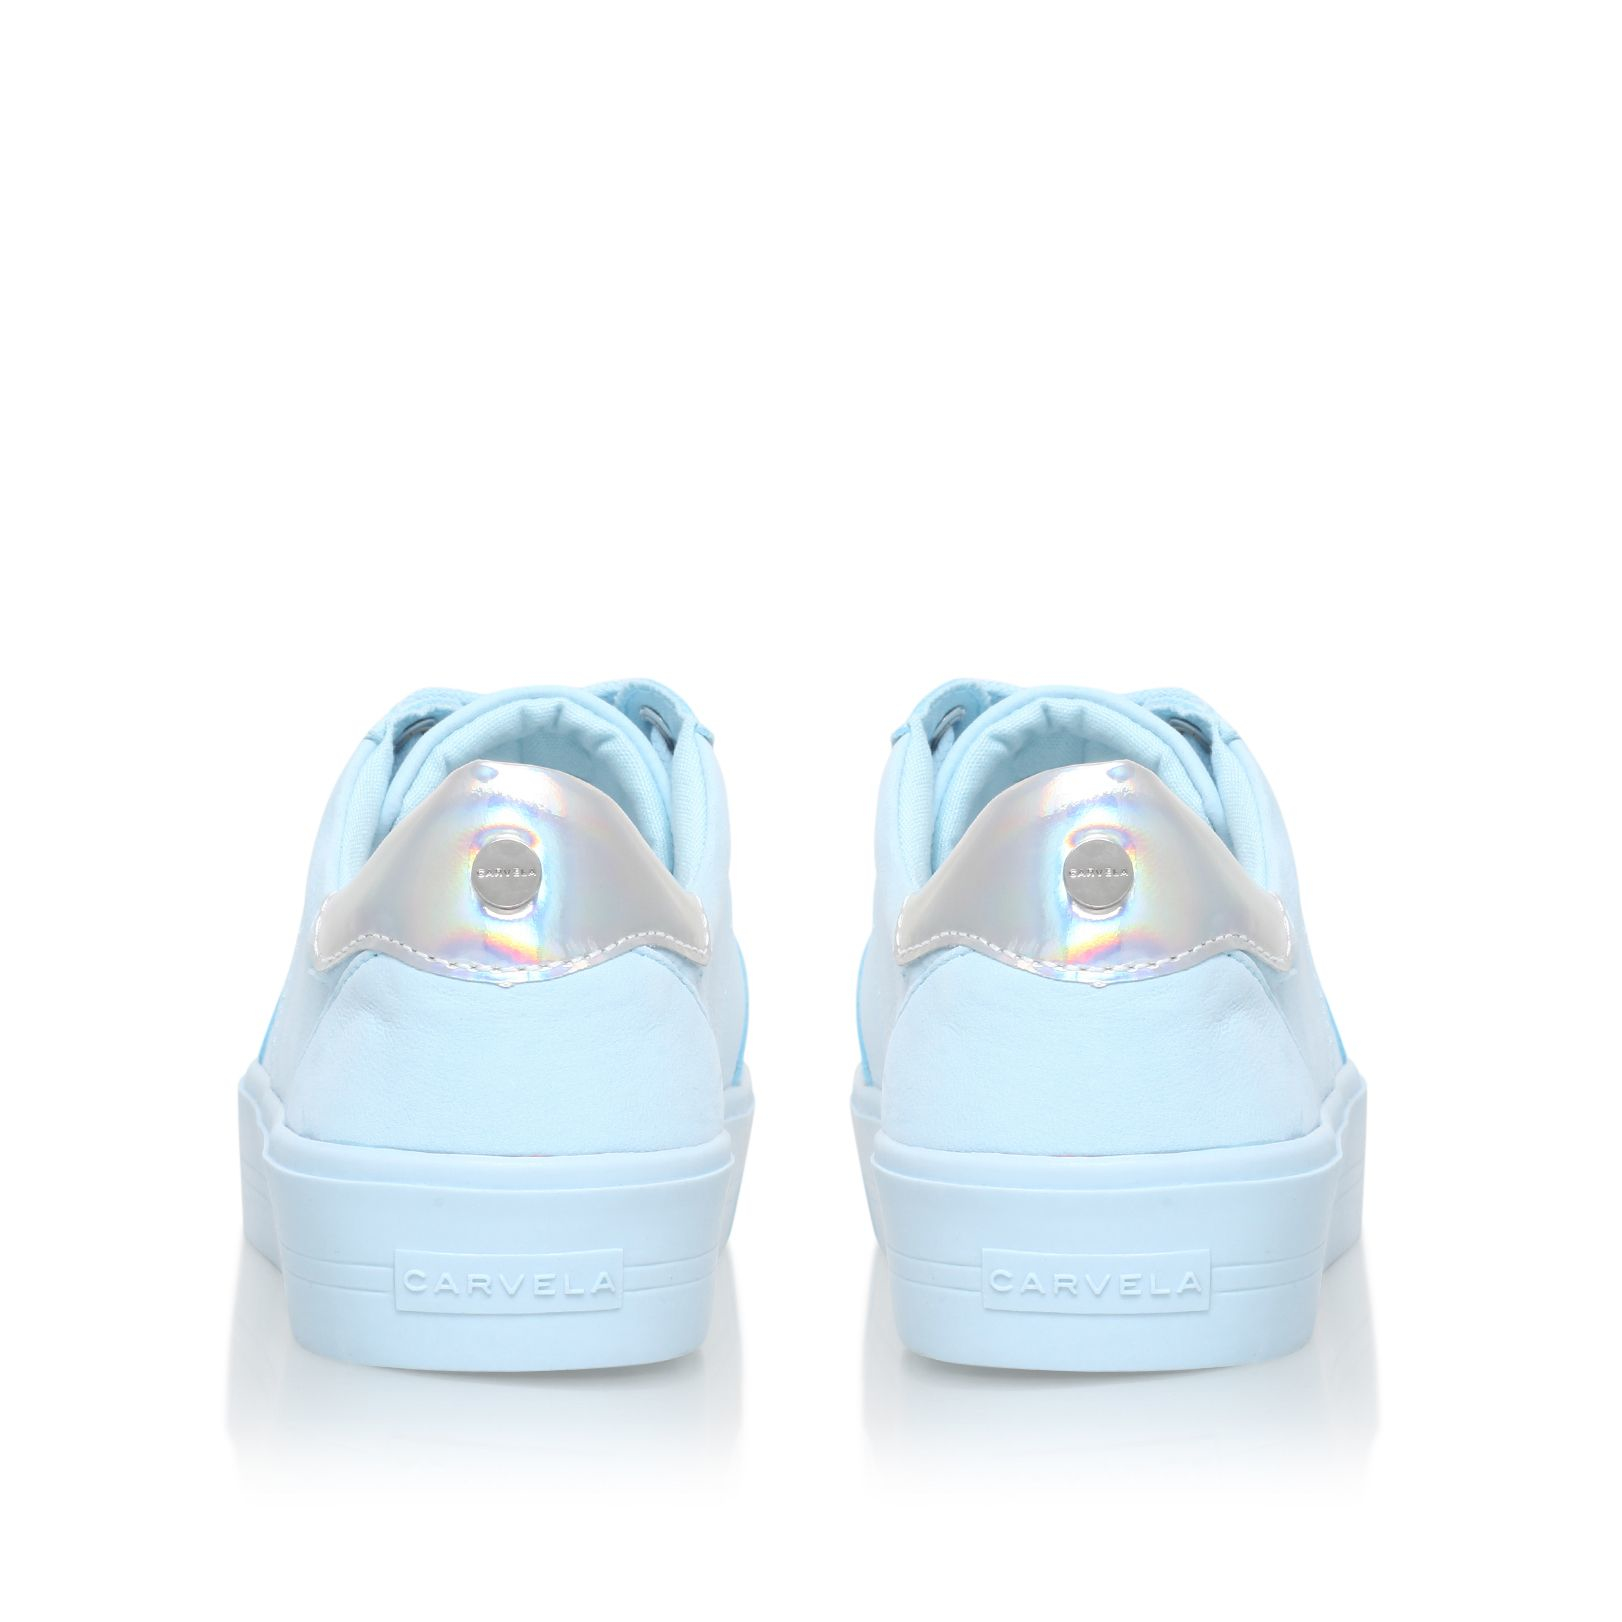 Carvela Kurt Geiger Synthetic Lotus Lace Up Sneakers in Light Blue (Blue)